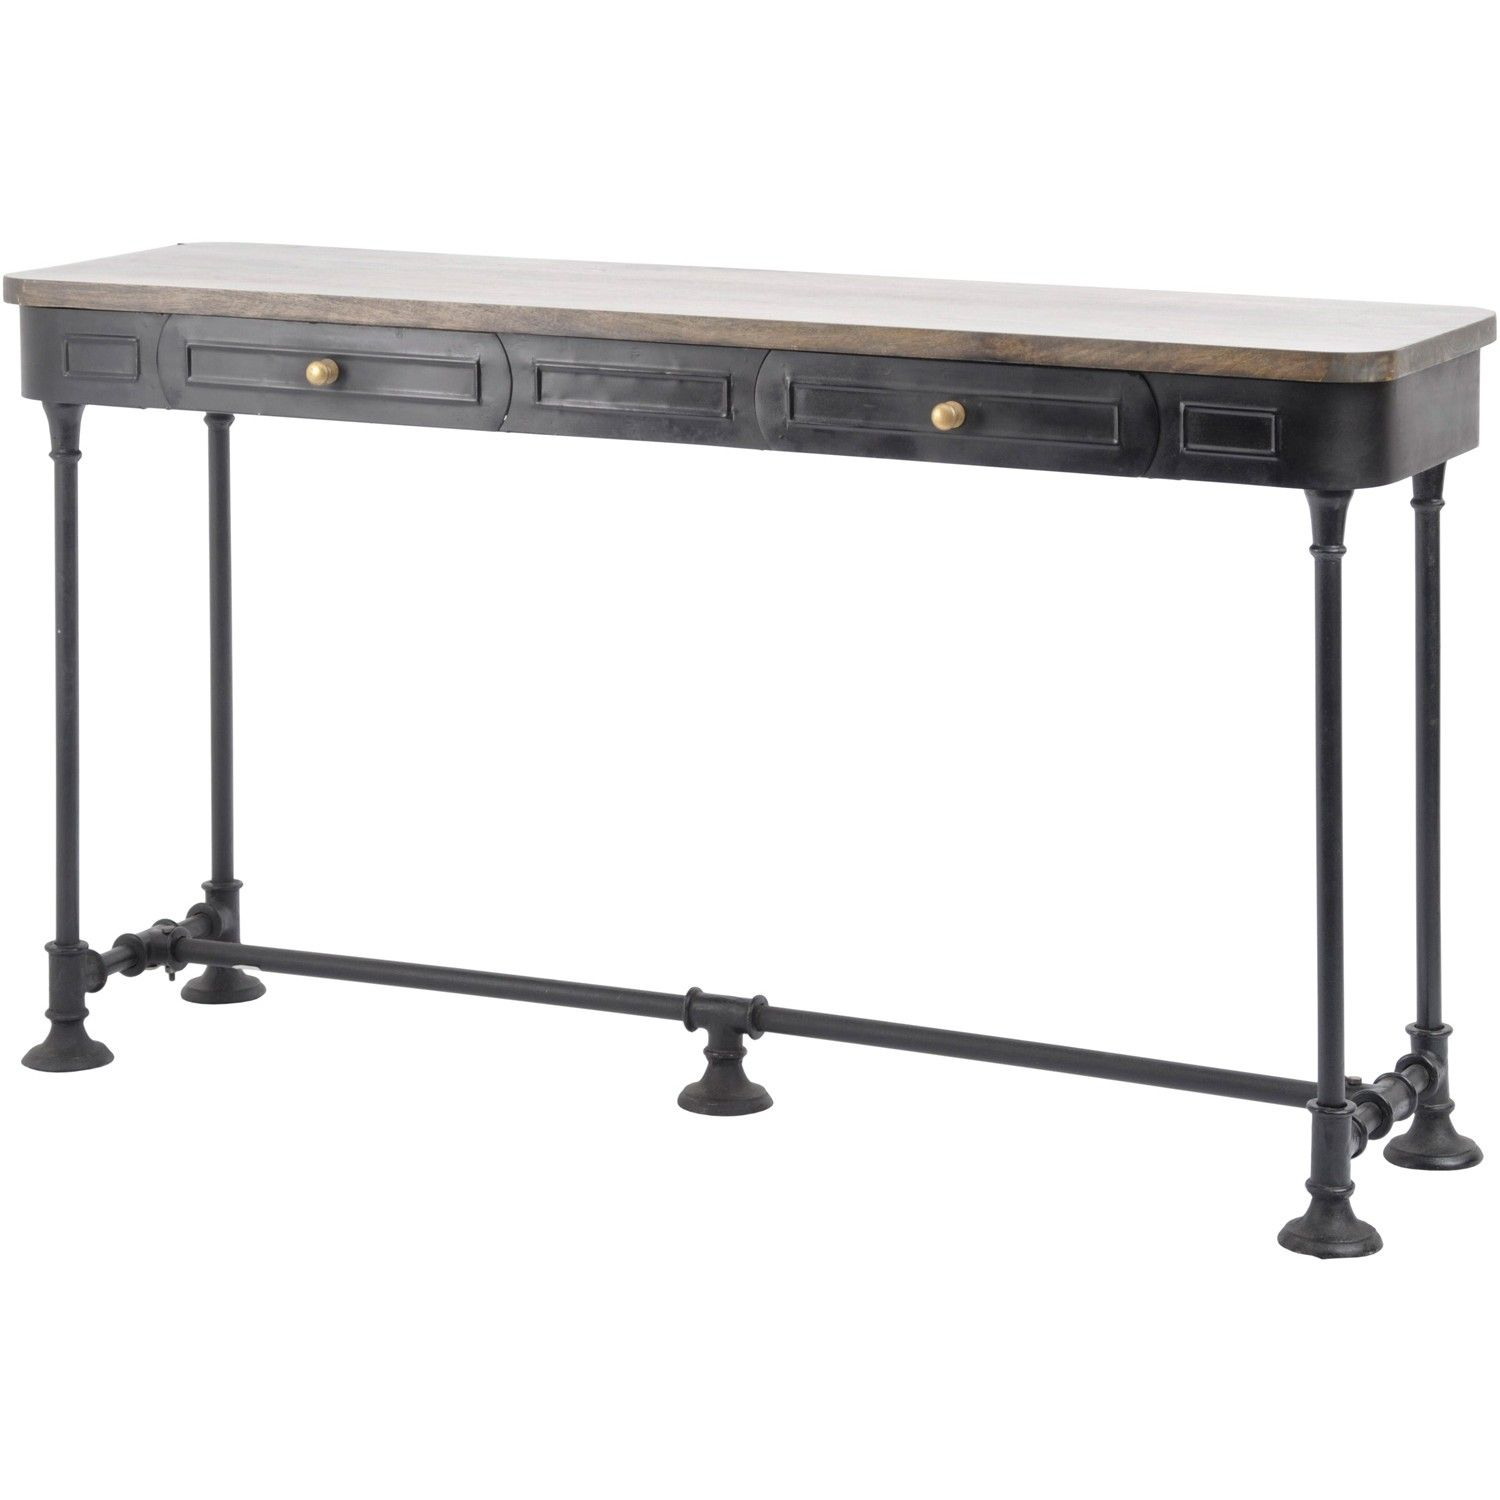 Wooden Slim Black Shallow Console Table With Drawers Black